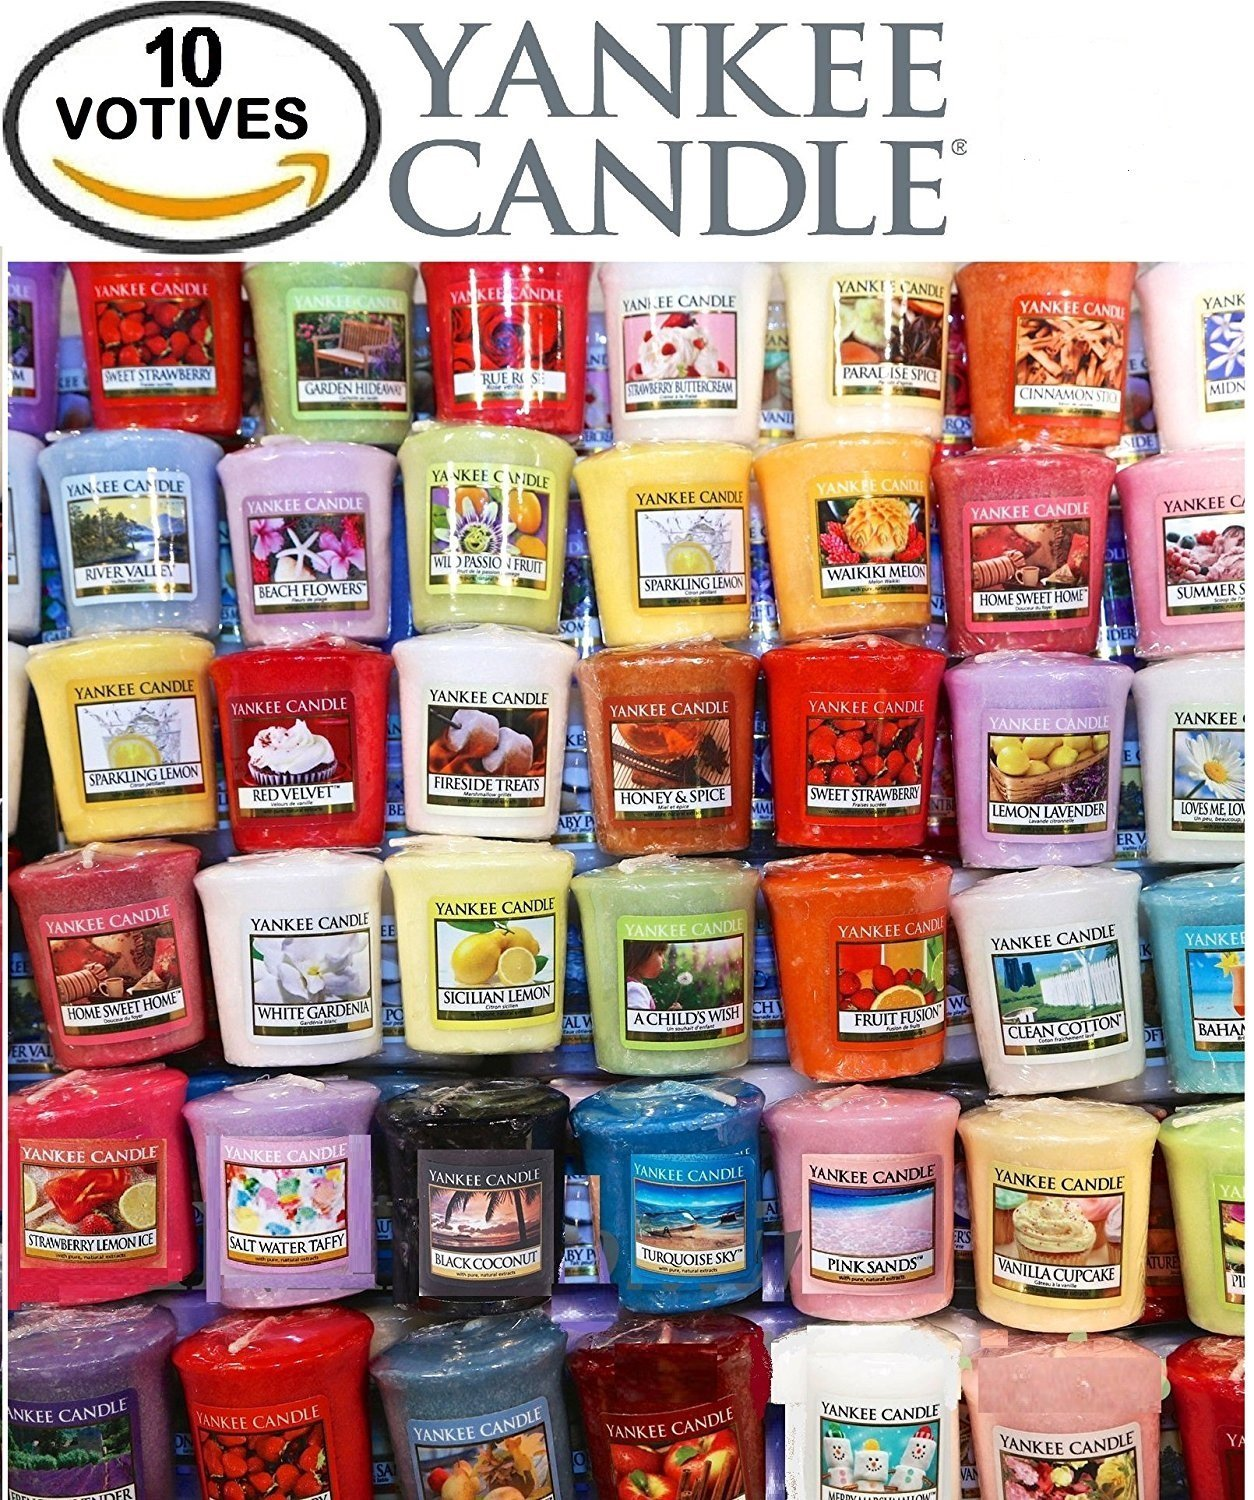 Yankee Candle Votives - Grab Bag of 10 Assorted Yankee Candle Votive  Candles (10 Ct Food & Spice Fragrances Mixed) By Grab Bag Yankee Candle